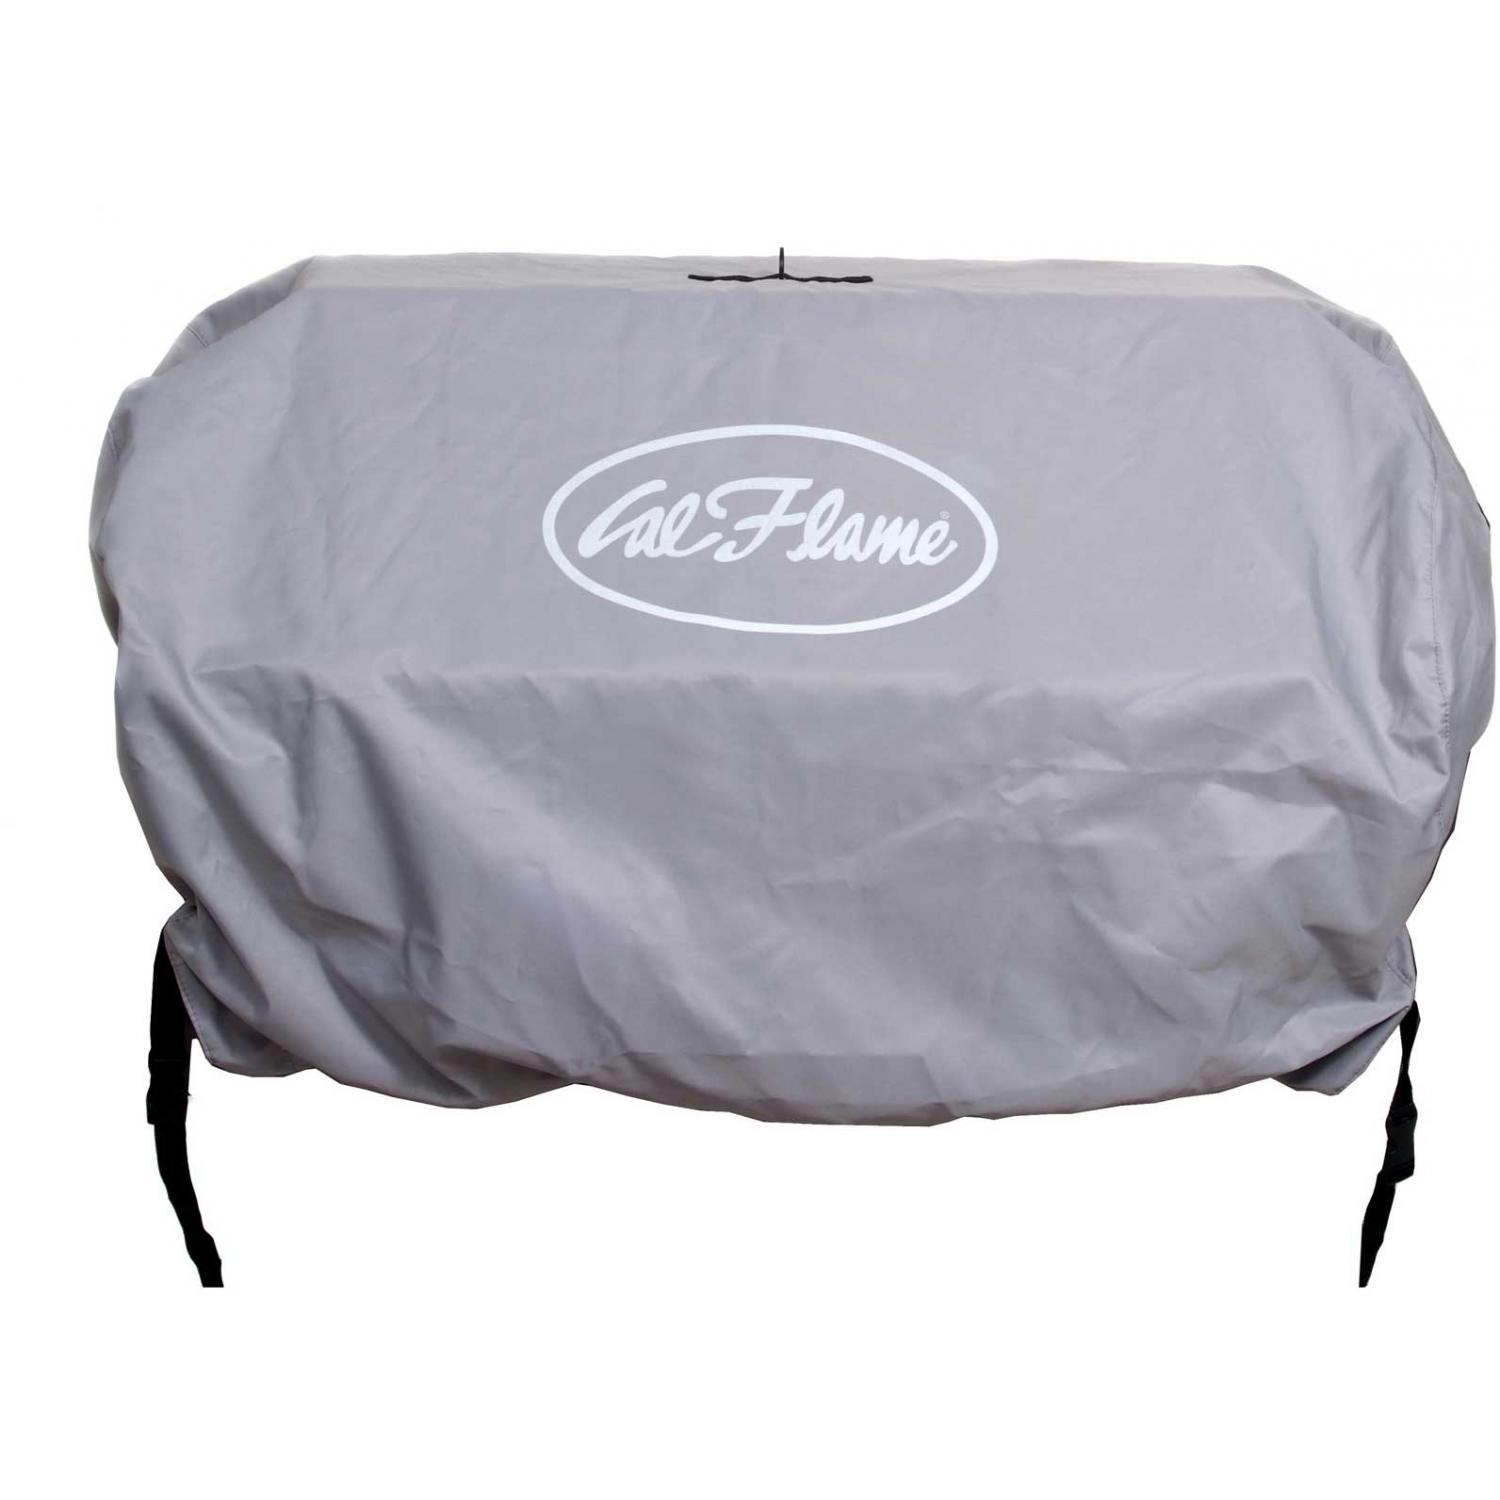 Cal Flame Bbq Grill Cover For 2 3 4 And 5 Burner Grills at Sears.com